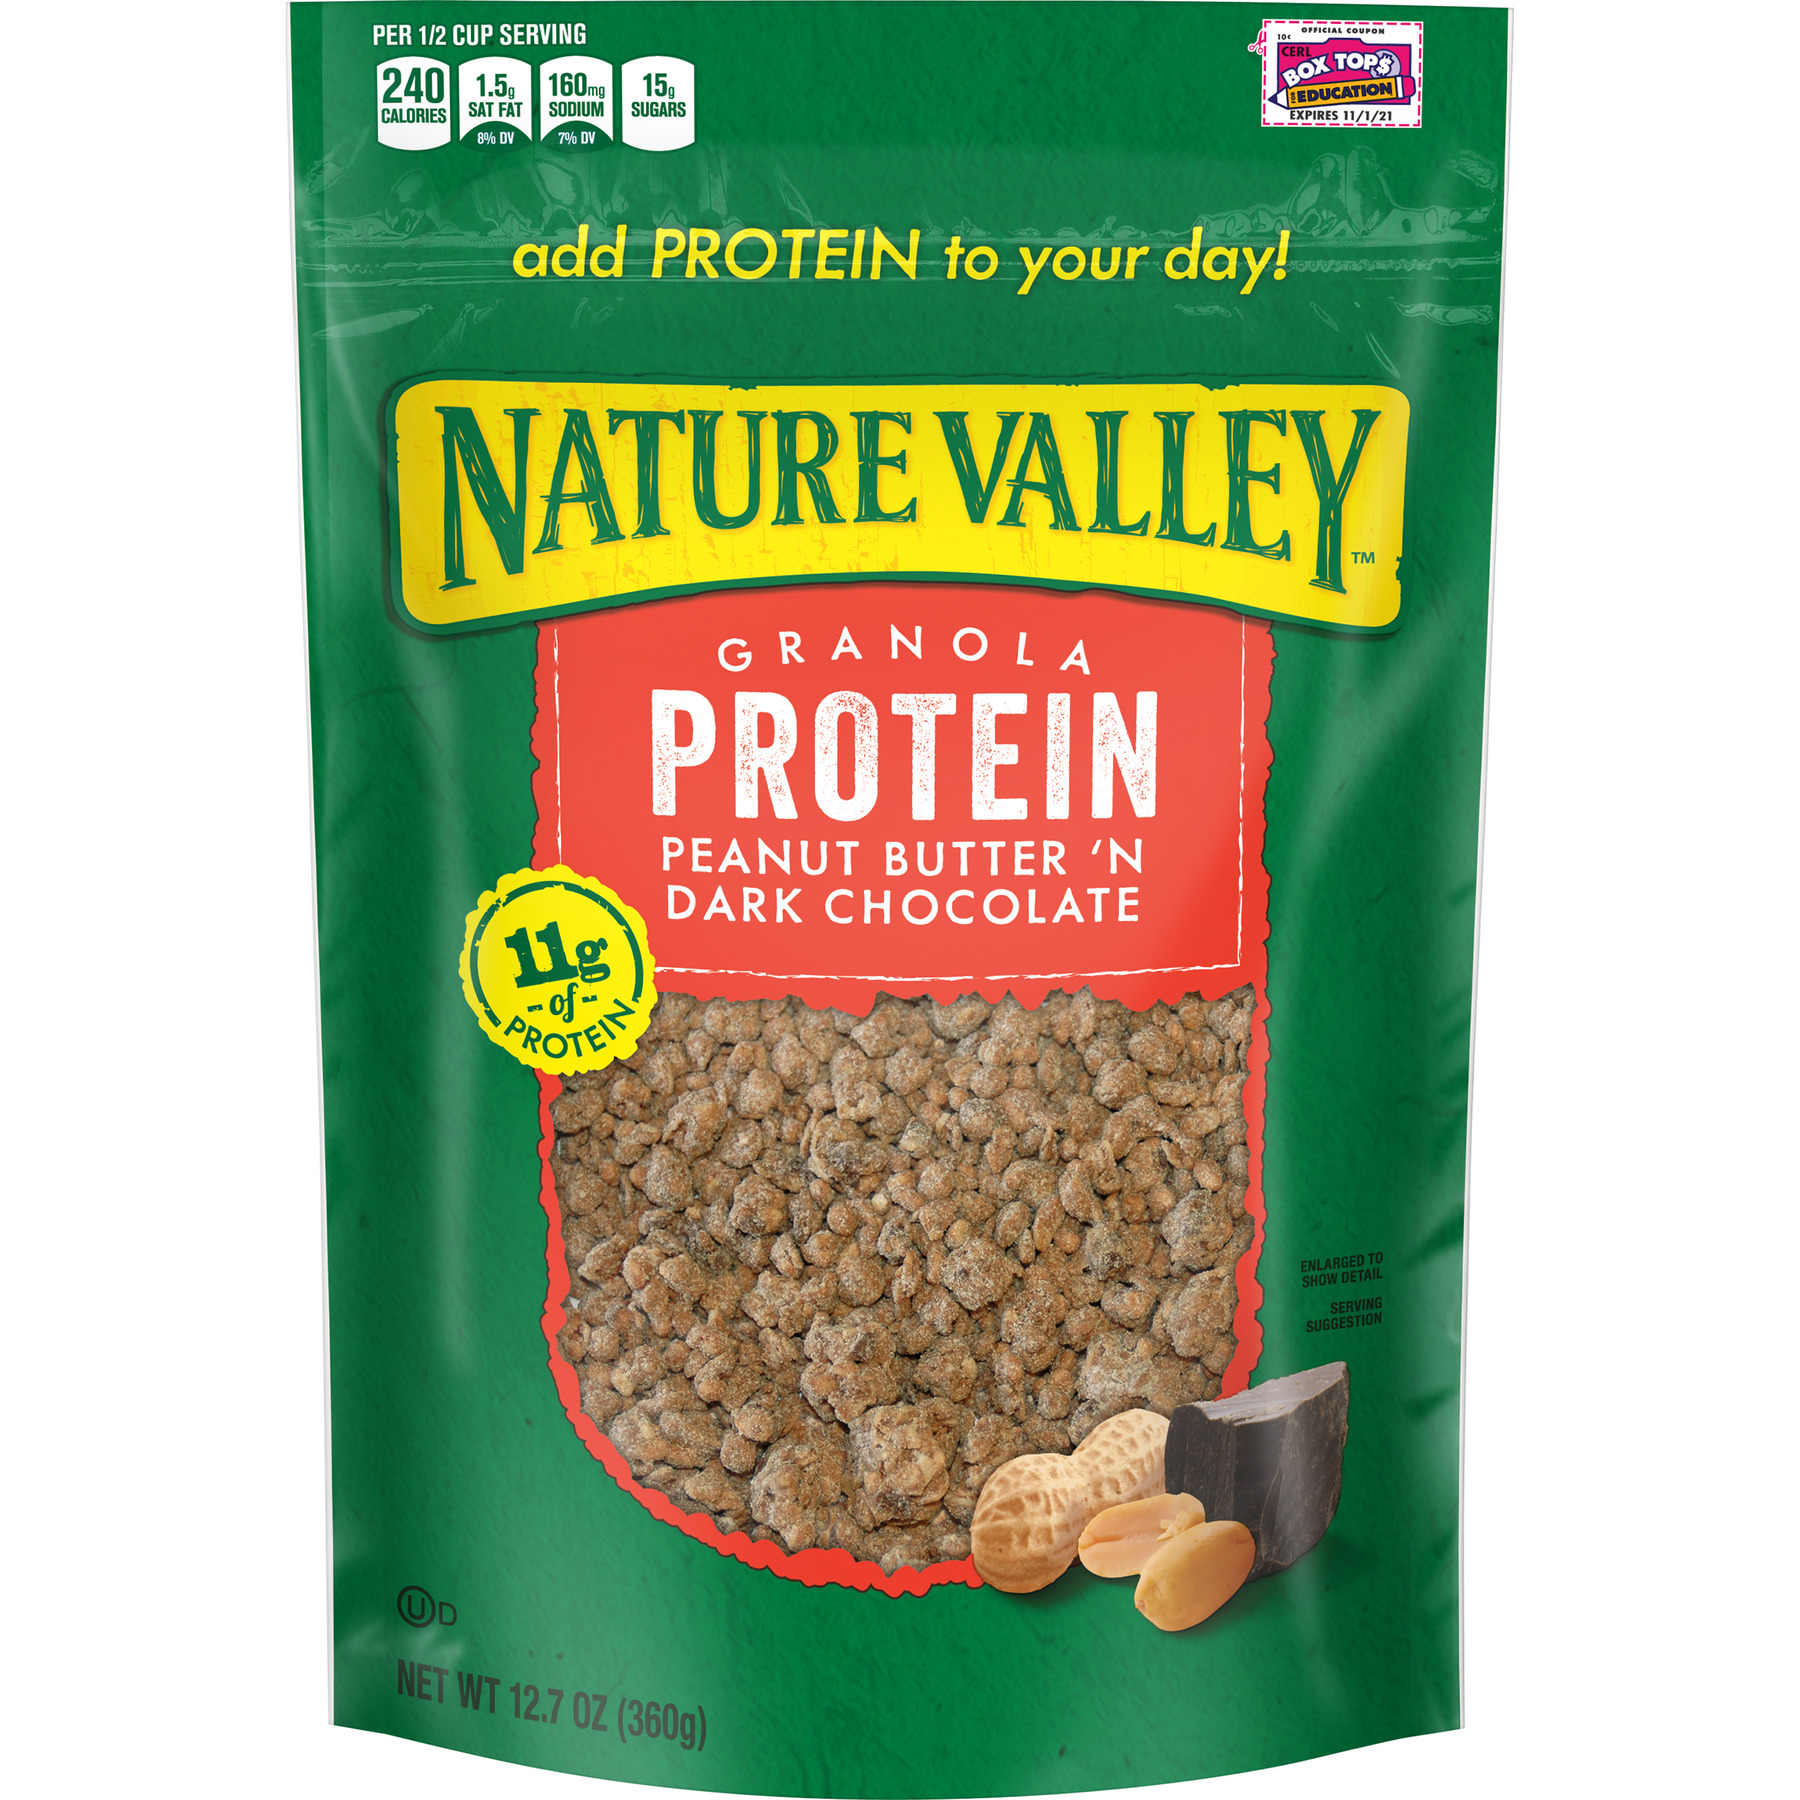 Nature Valley Protein Peanut Butter 'N Dark Chocolate Cereal, 12.7 oz